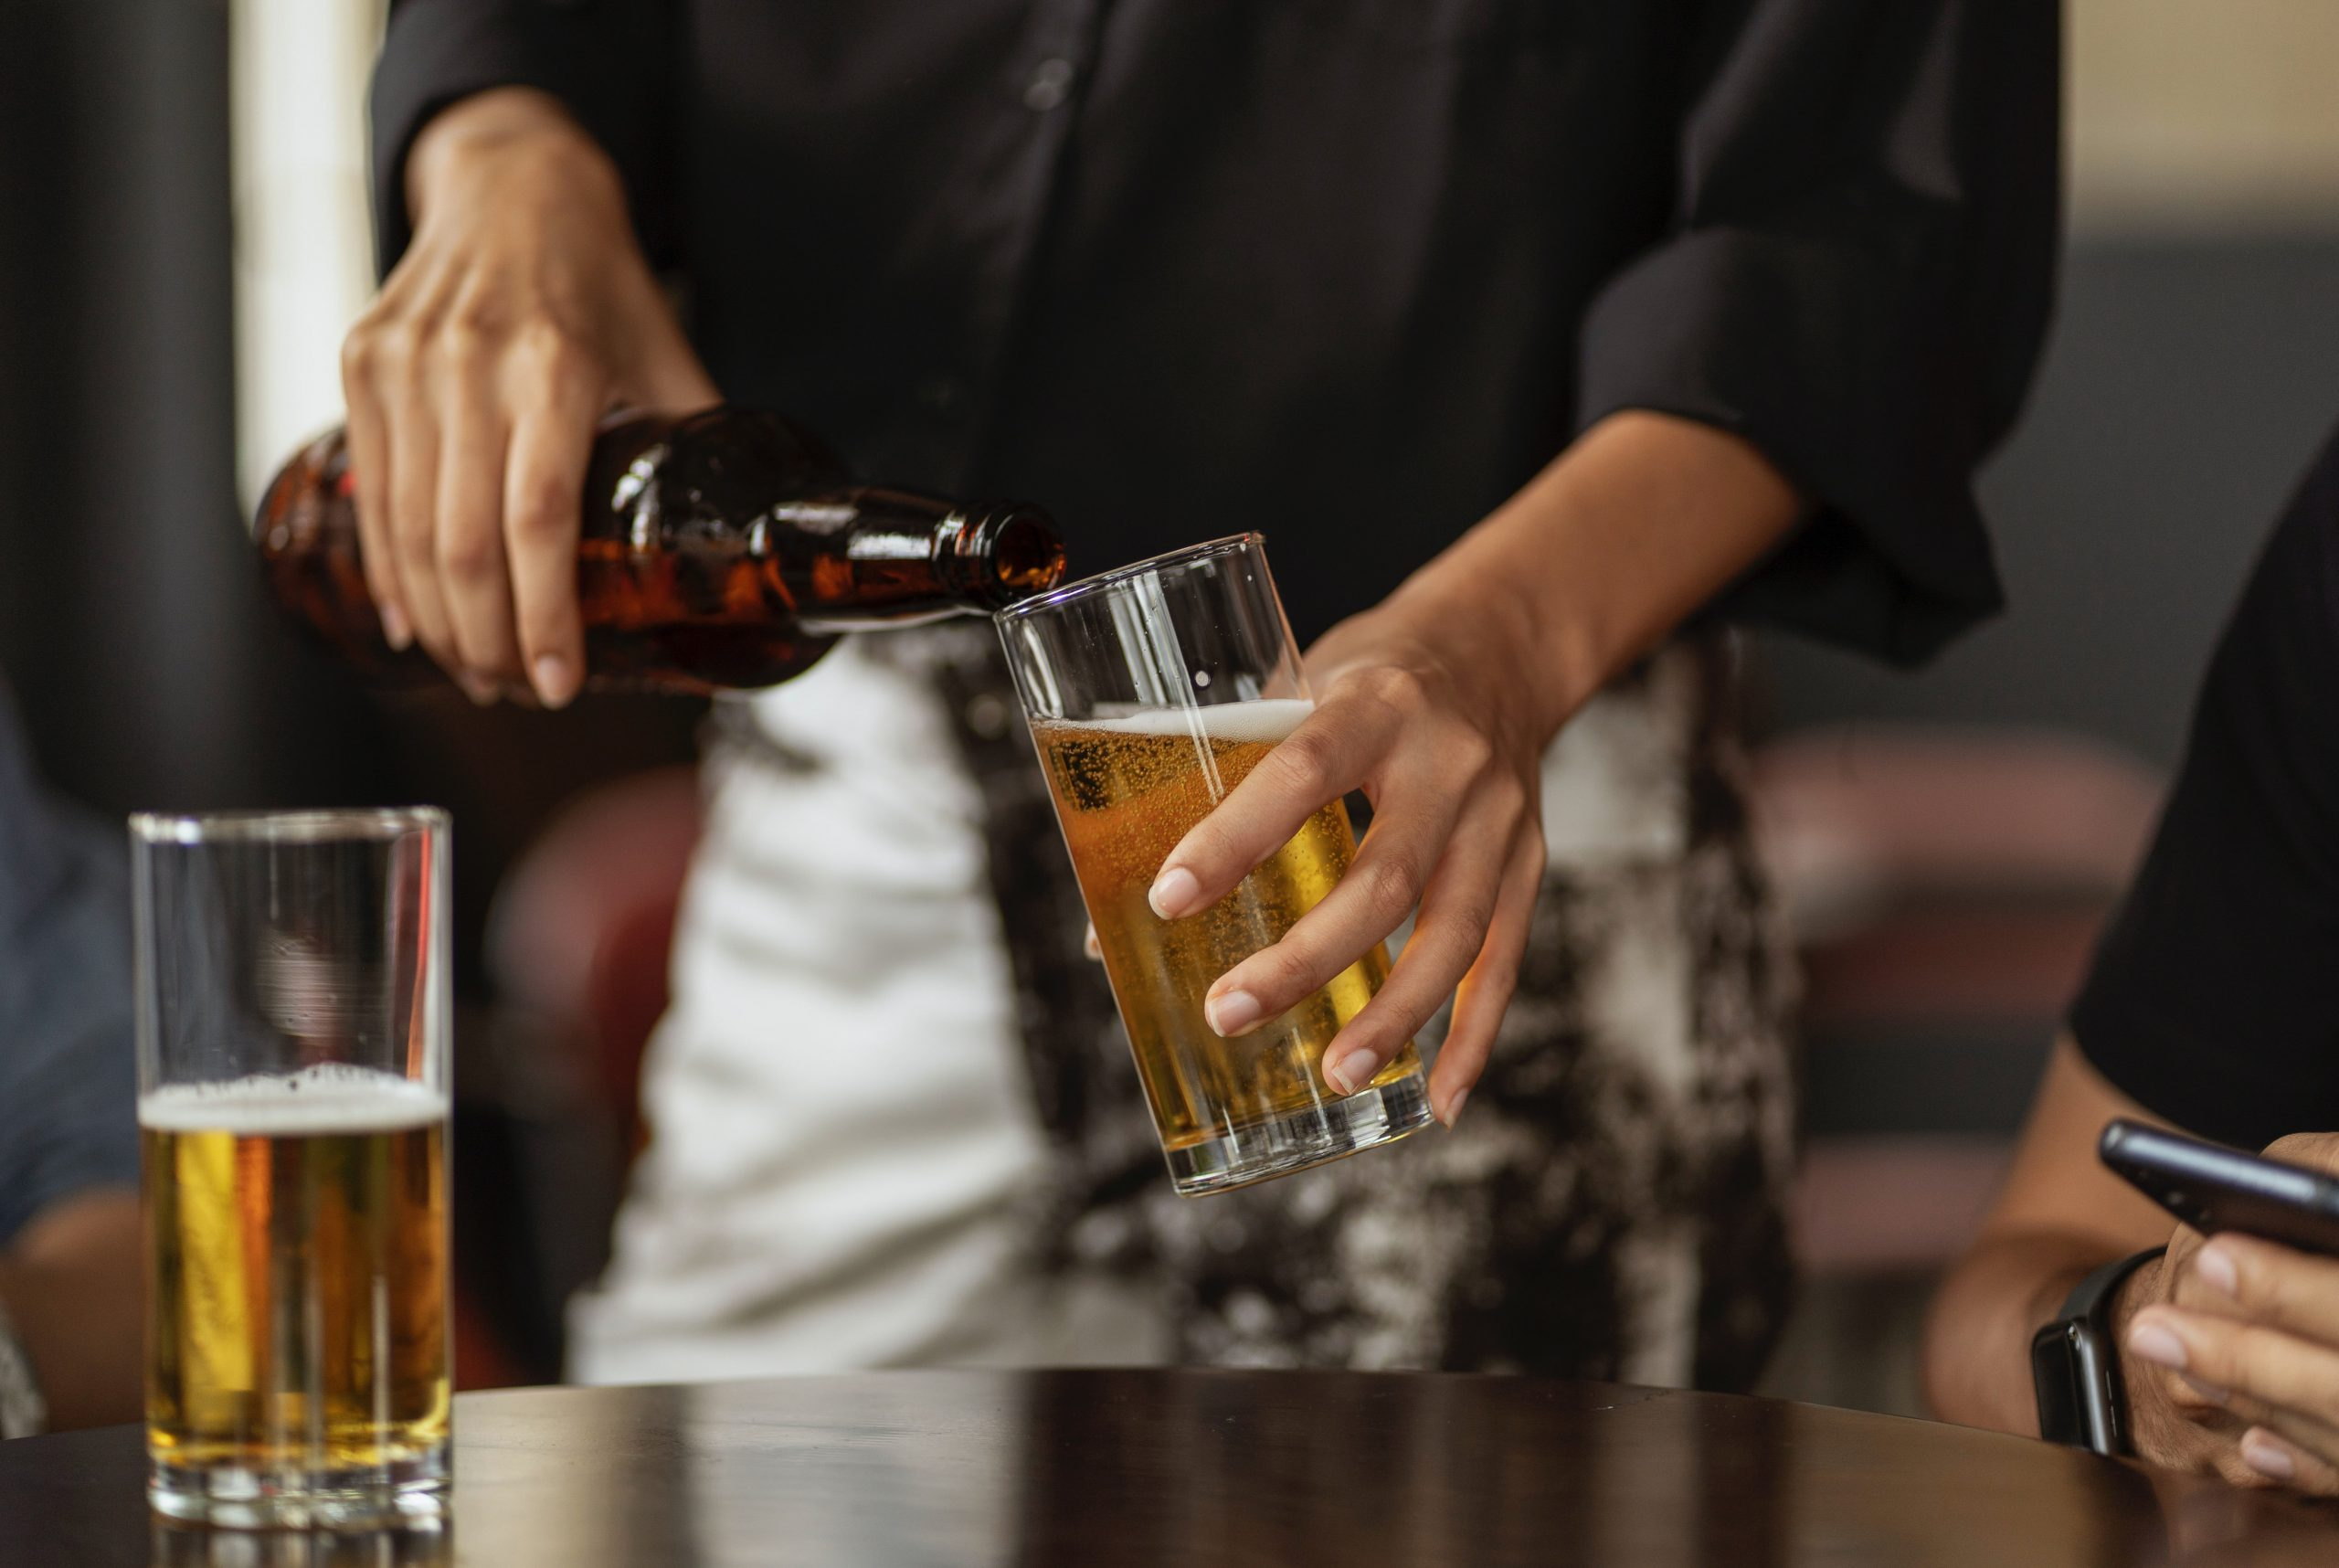 a man pouring light beer in a glass